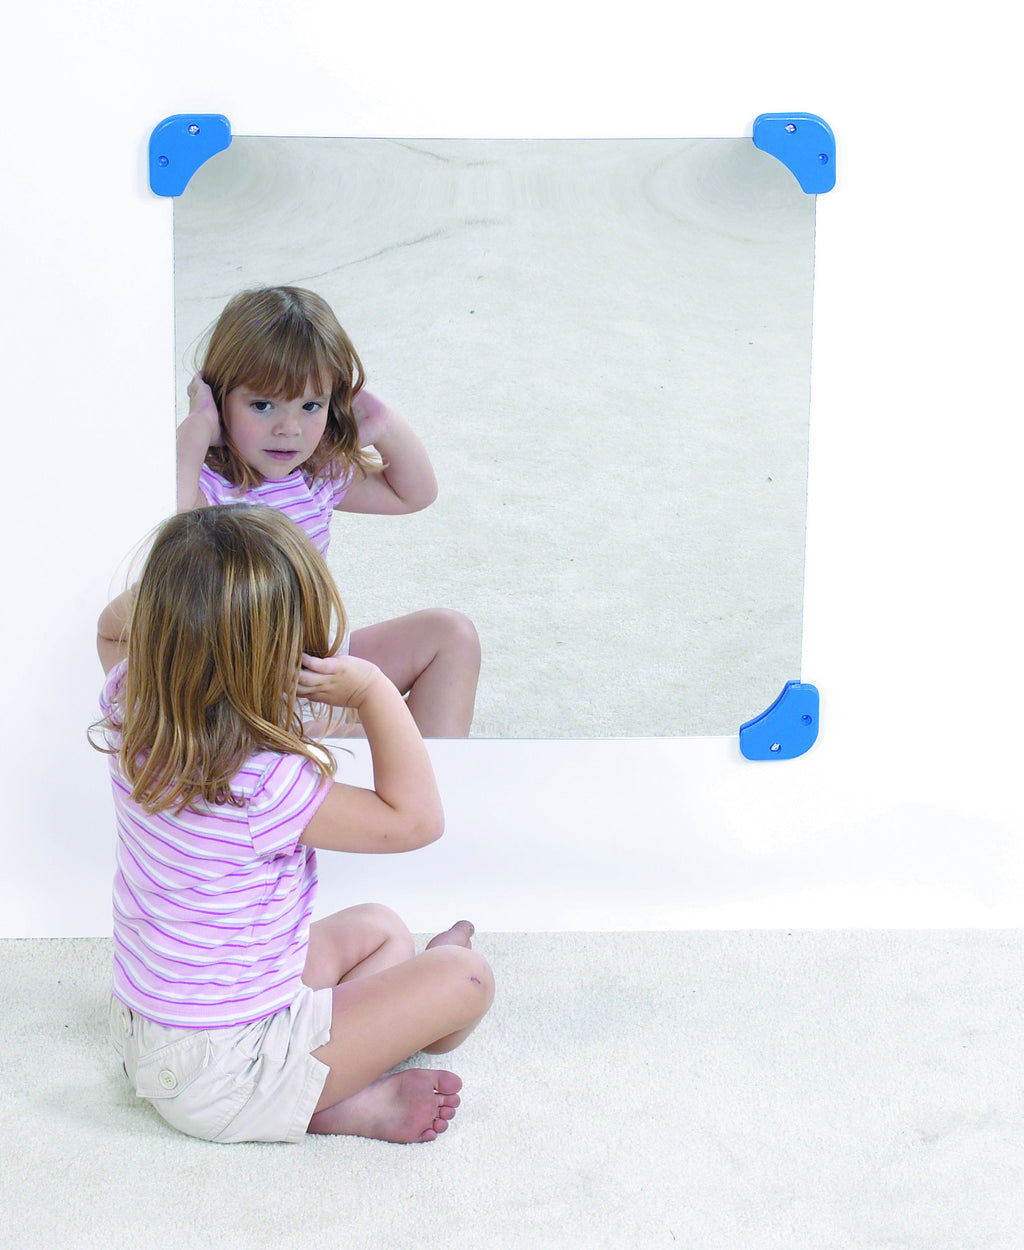 "24"" x 24"" Acrylic Wall Mirror"